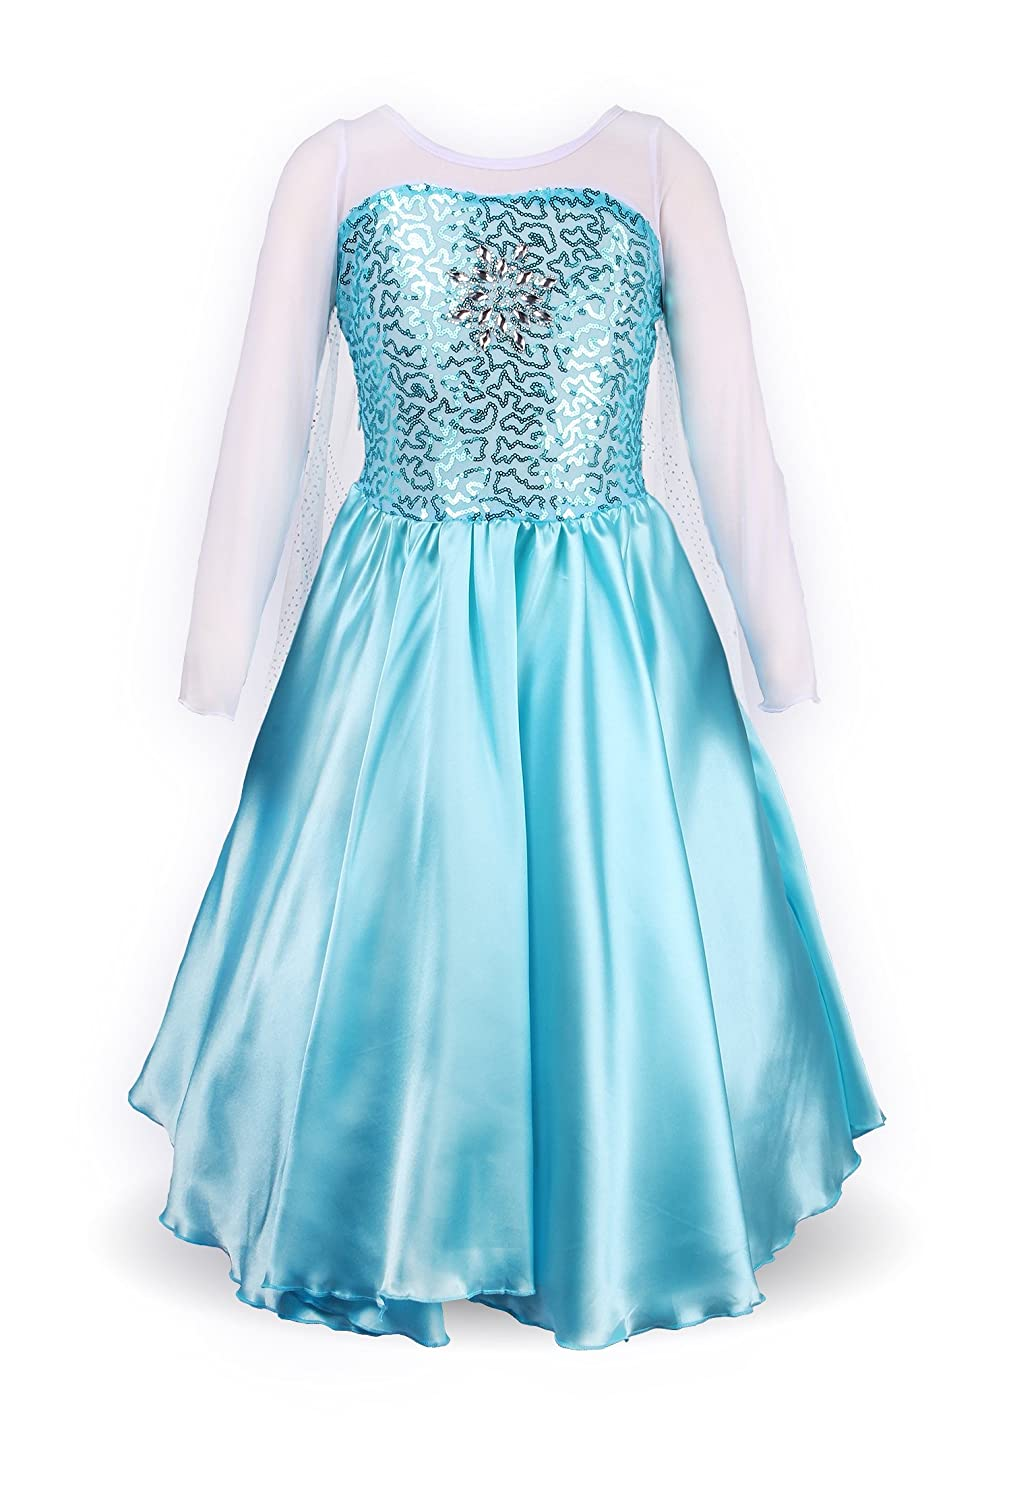 frozen dress for girls images galleries with a bite. Black Bedroom Furniture Sets. Home Design Ideas